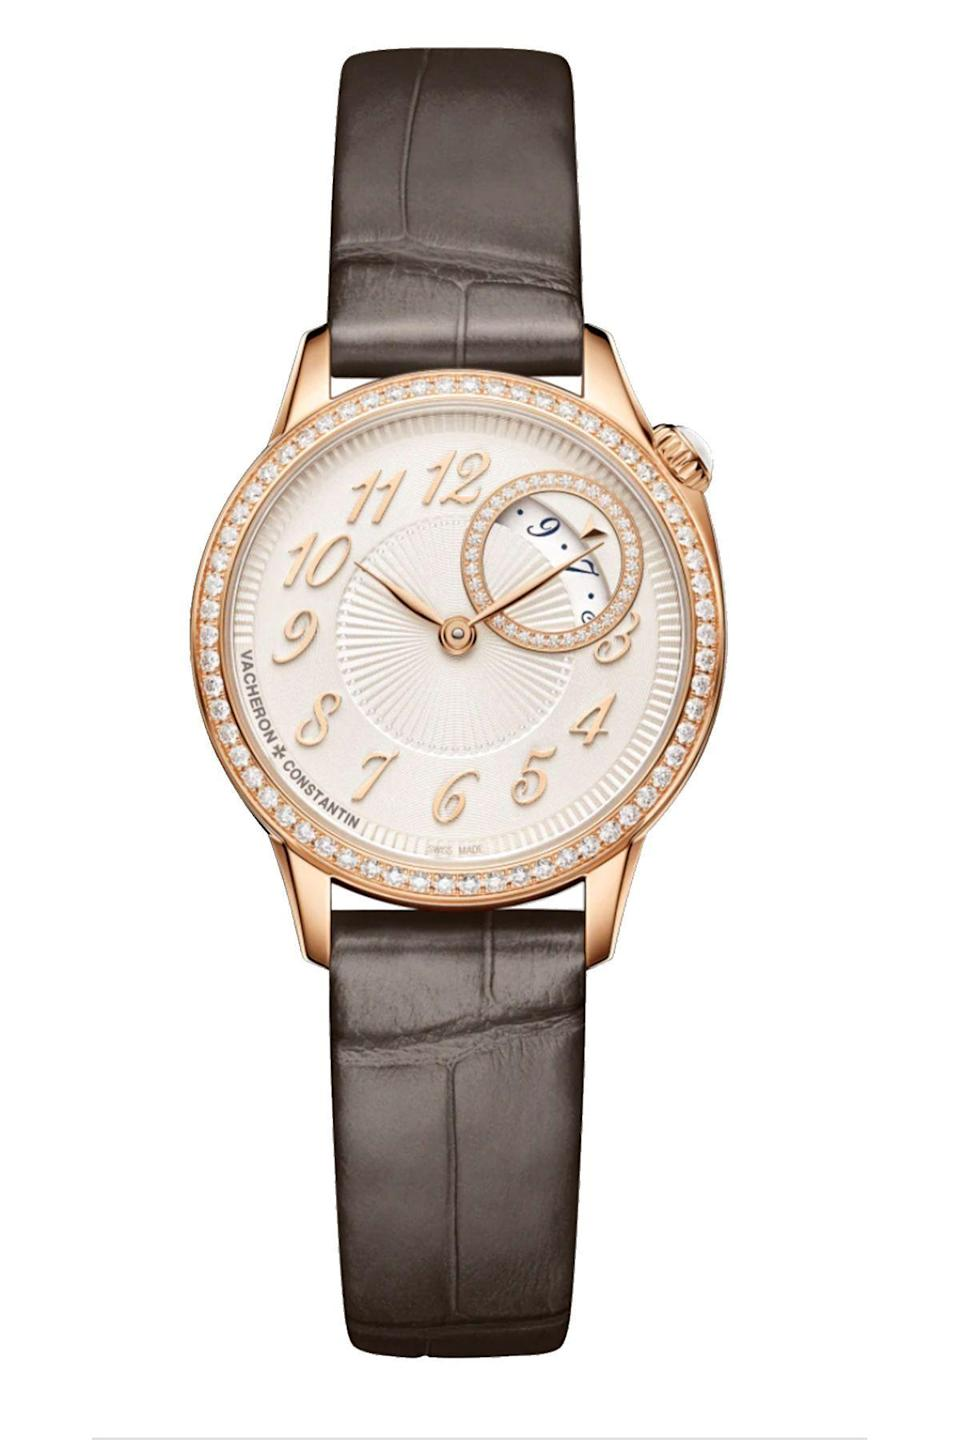 """<p><strong>Vacheron Constantin</strong></p><p>vacheron-constantin.com</p><p><strong>$18700.00</strong></p><p><a href=""""https://www.vacheron-constantin.com/en2/watches/egerie/egerie-quartz-1205f-000r-b622.html"""" rel=""""nofollow noopener"""" target=""""_blank"""" data-ylk=""""slk:Shop Now"""" class=""""link rapid-noclick-resp"""">Shop Now</a></p><p>Refined elegance in a skin-tone flattering rose gold hue, perfect for when you want to mix-and-match metals.</p>"""